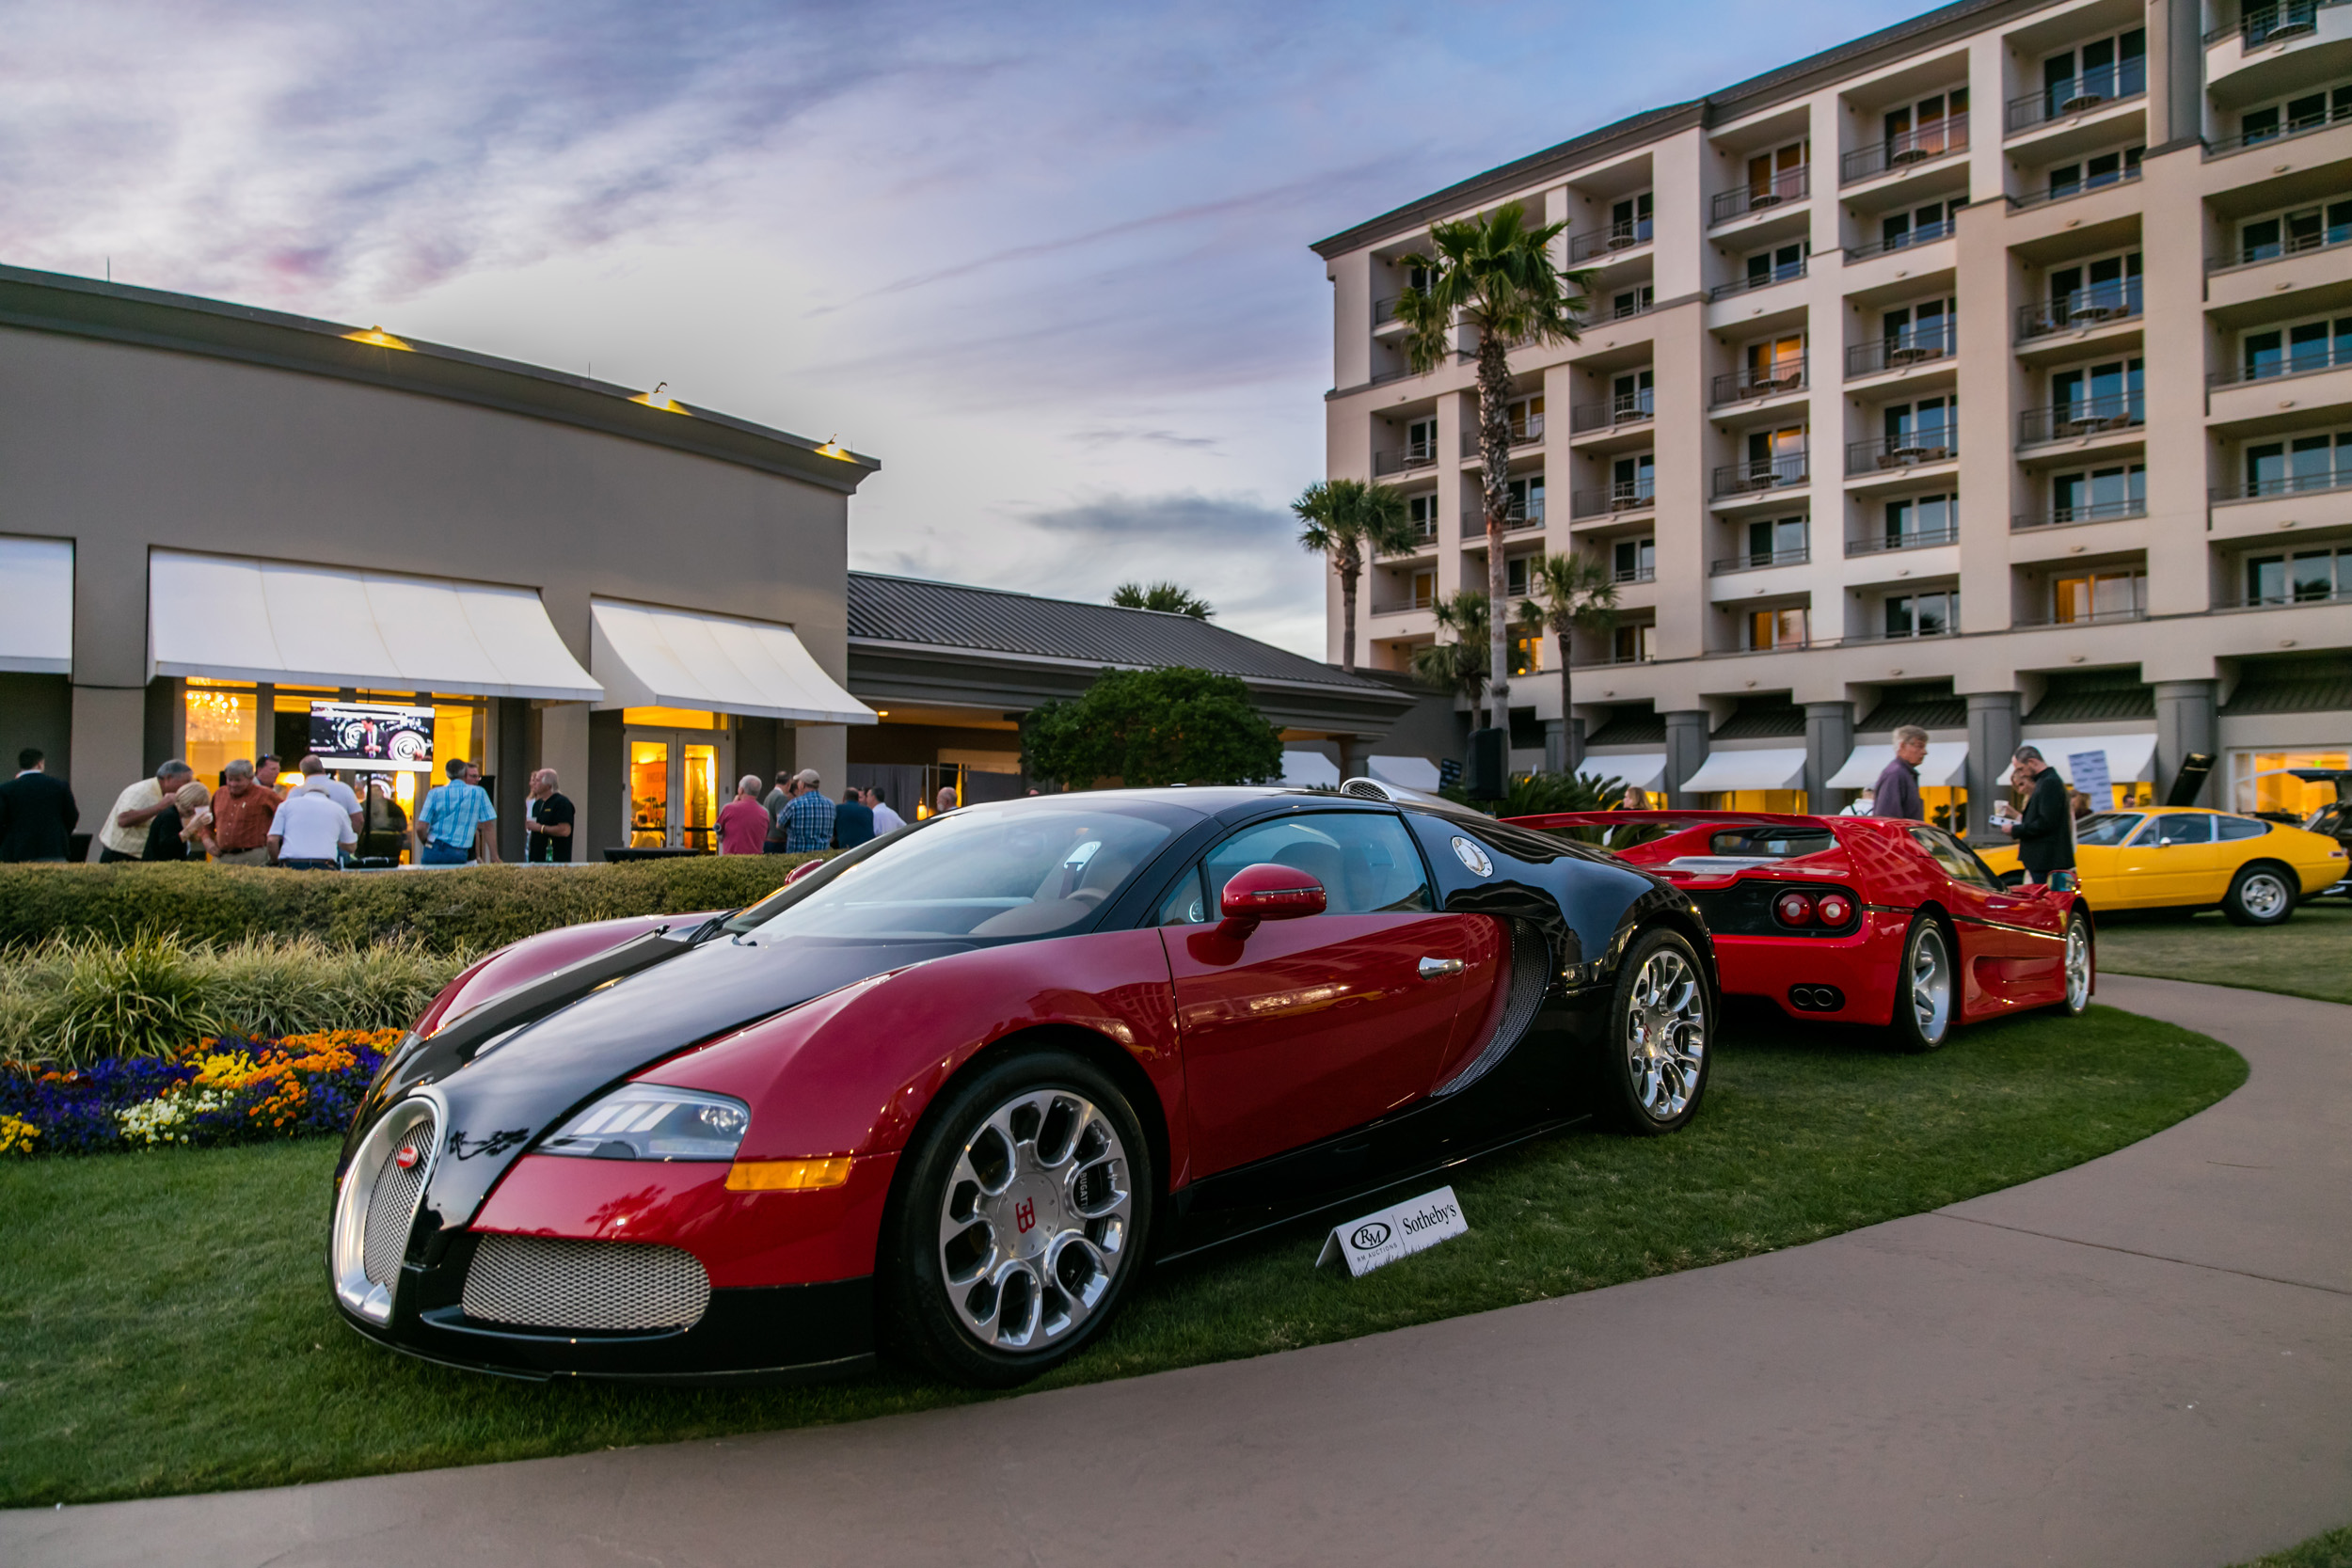 Special Thanks To Automotive Photography By Deremer Studios Llc 2017 Amelia Island Concours D Elegance